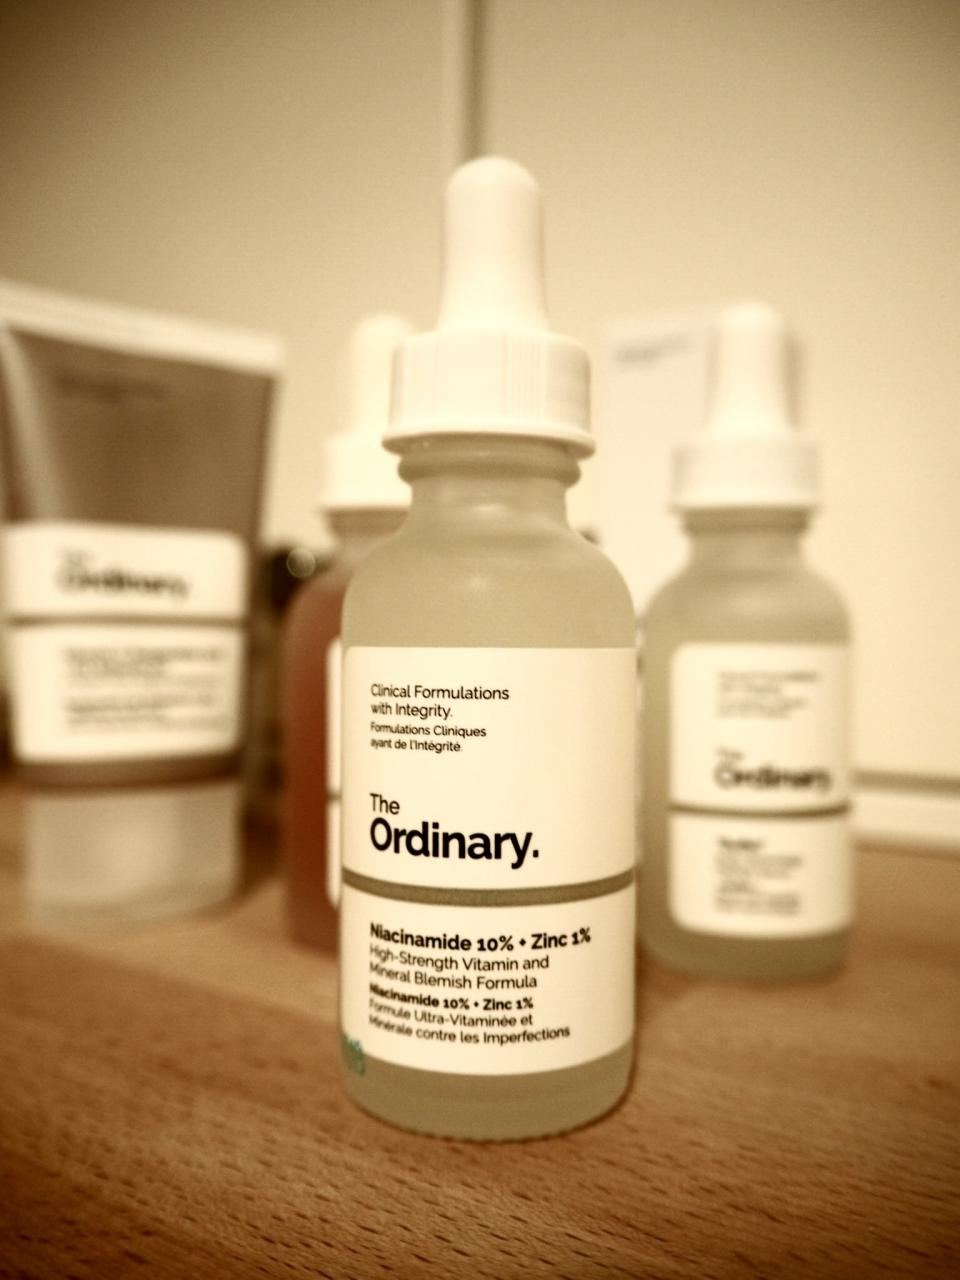 The Ordinary Skincare Acne and Aging Skin Regime packaging- dropper bottle